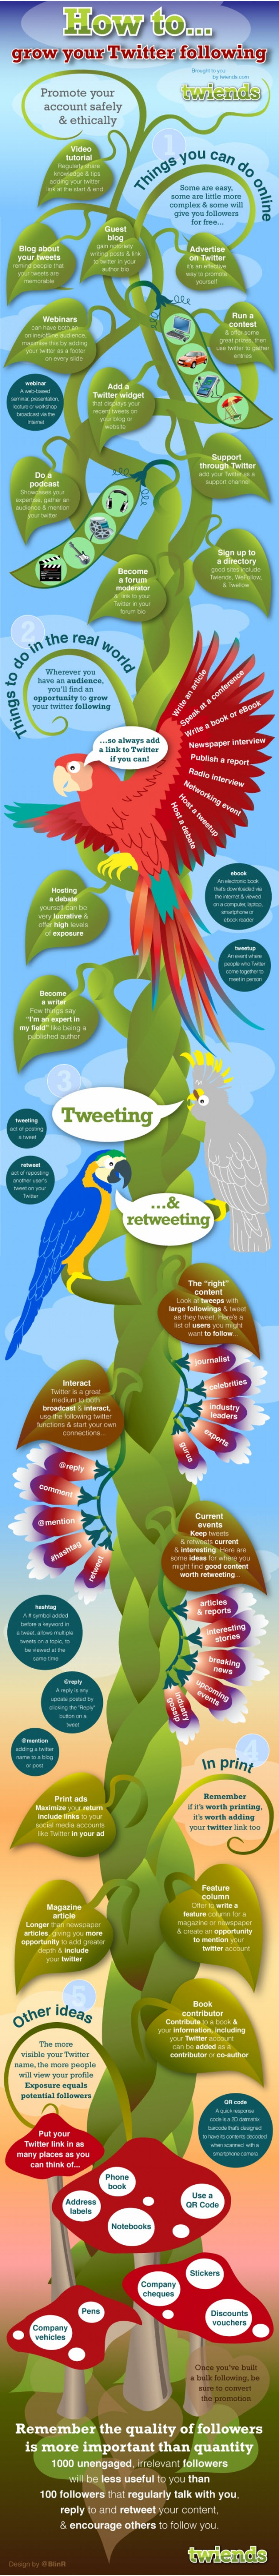 How to increase your twitter following